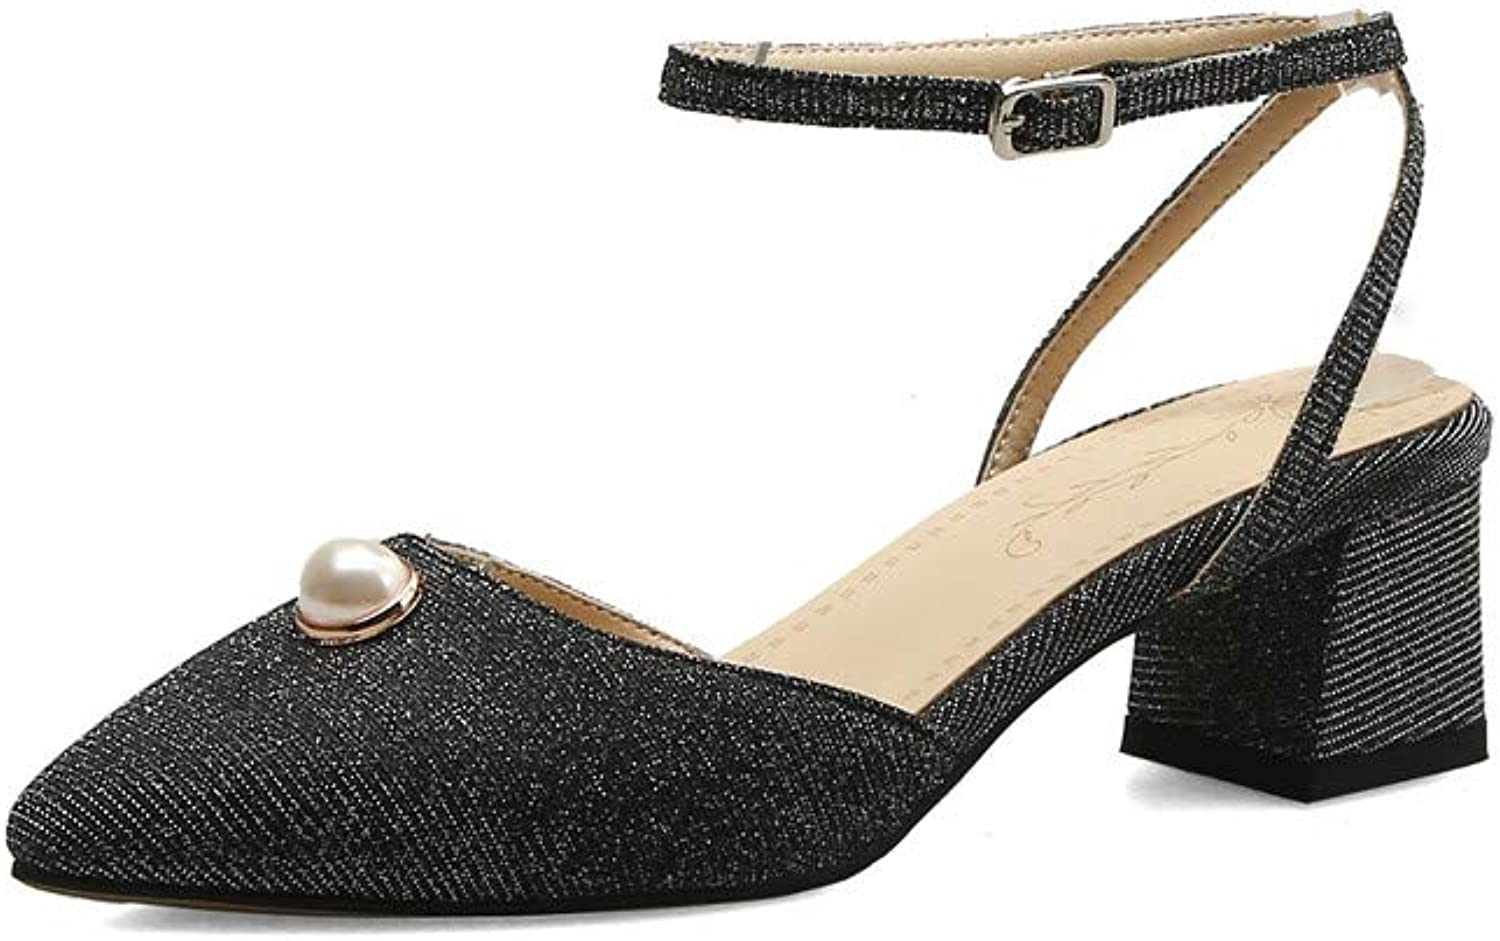 Nine Seven Sequins Leather Women's Square Toe Mid Chunky Heel Elegant Handmade Concise Buckle Ankle Strap Fashion Women Pumps with Pearl